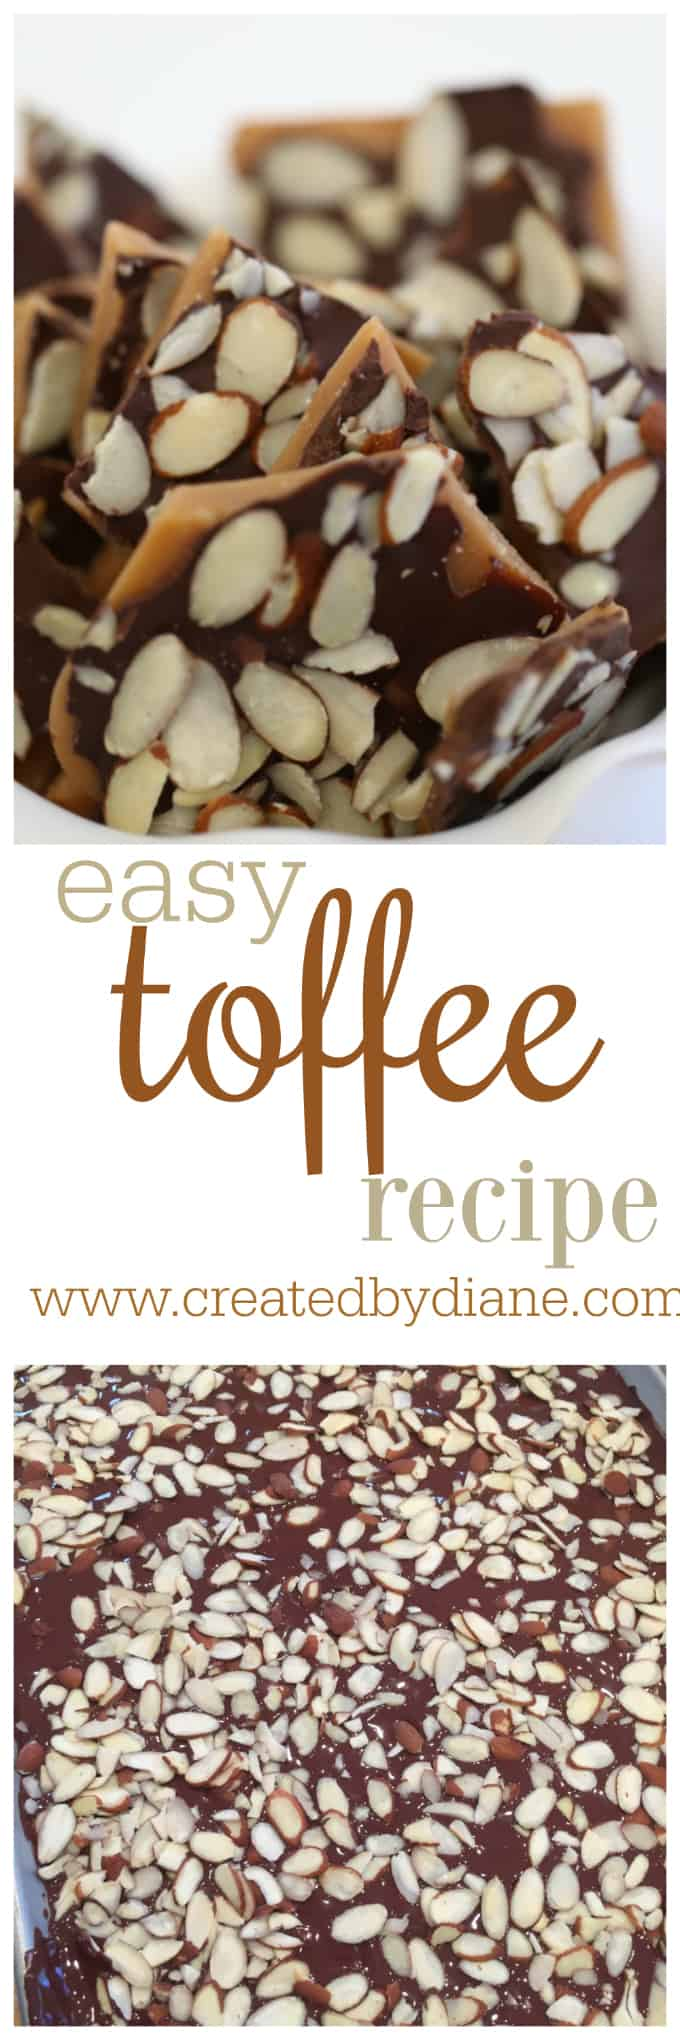 easy toffee recipe www.createdbydiane.com